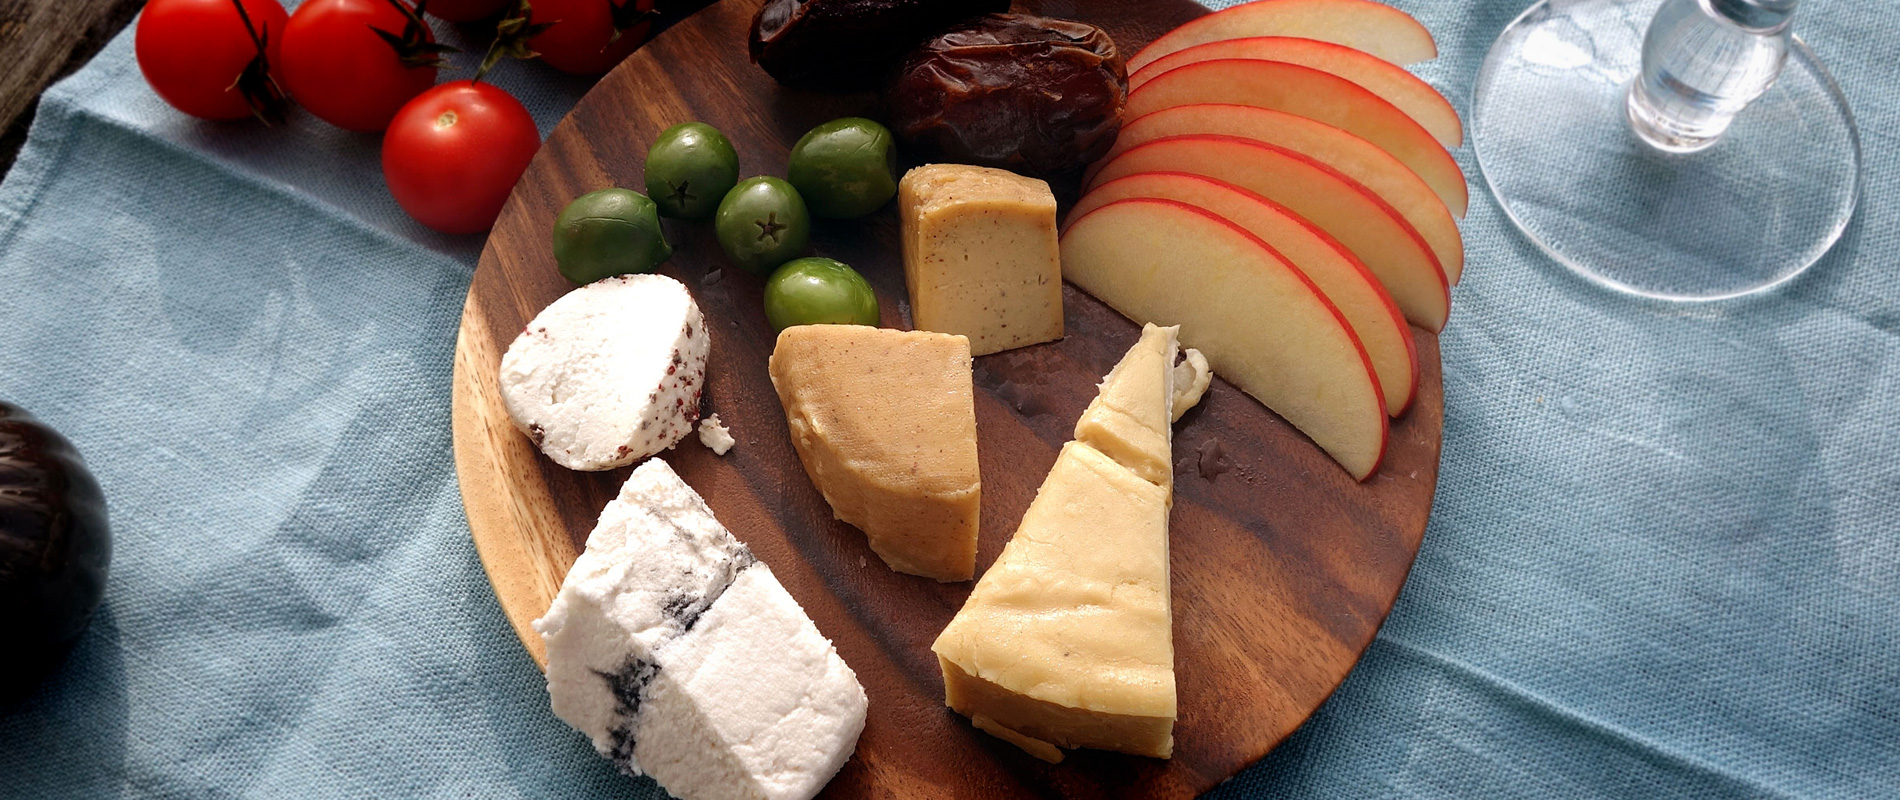 Vegan Cheese Selection